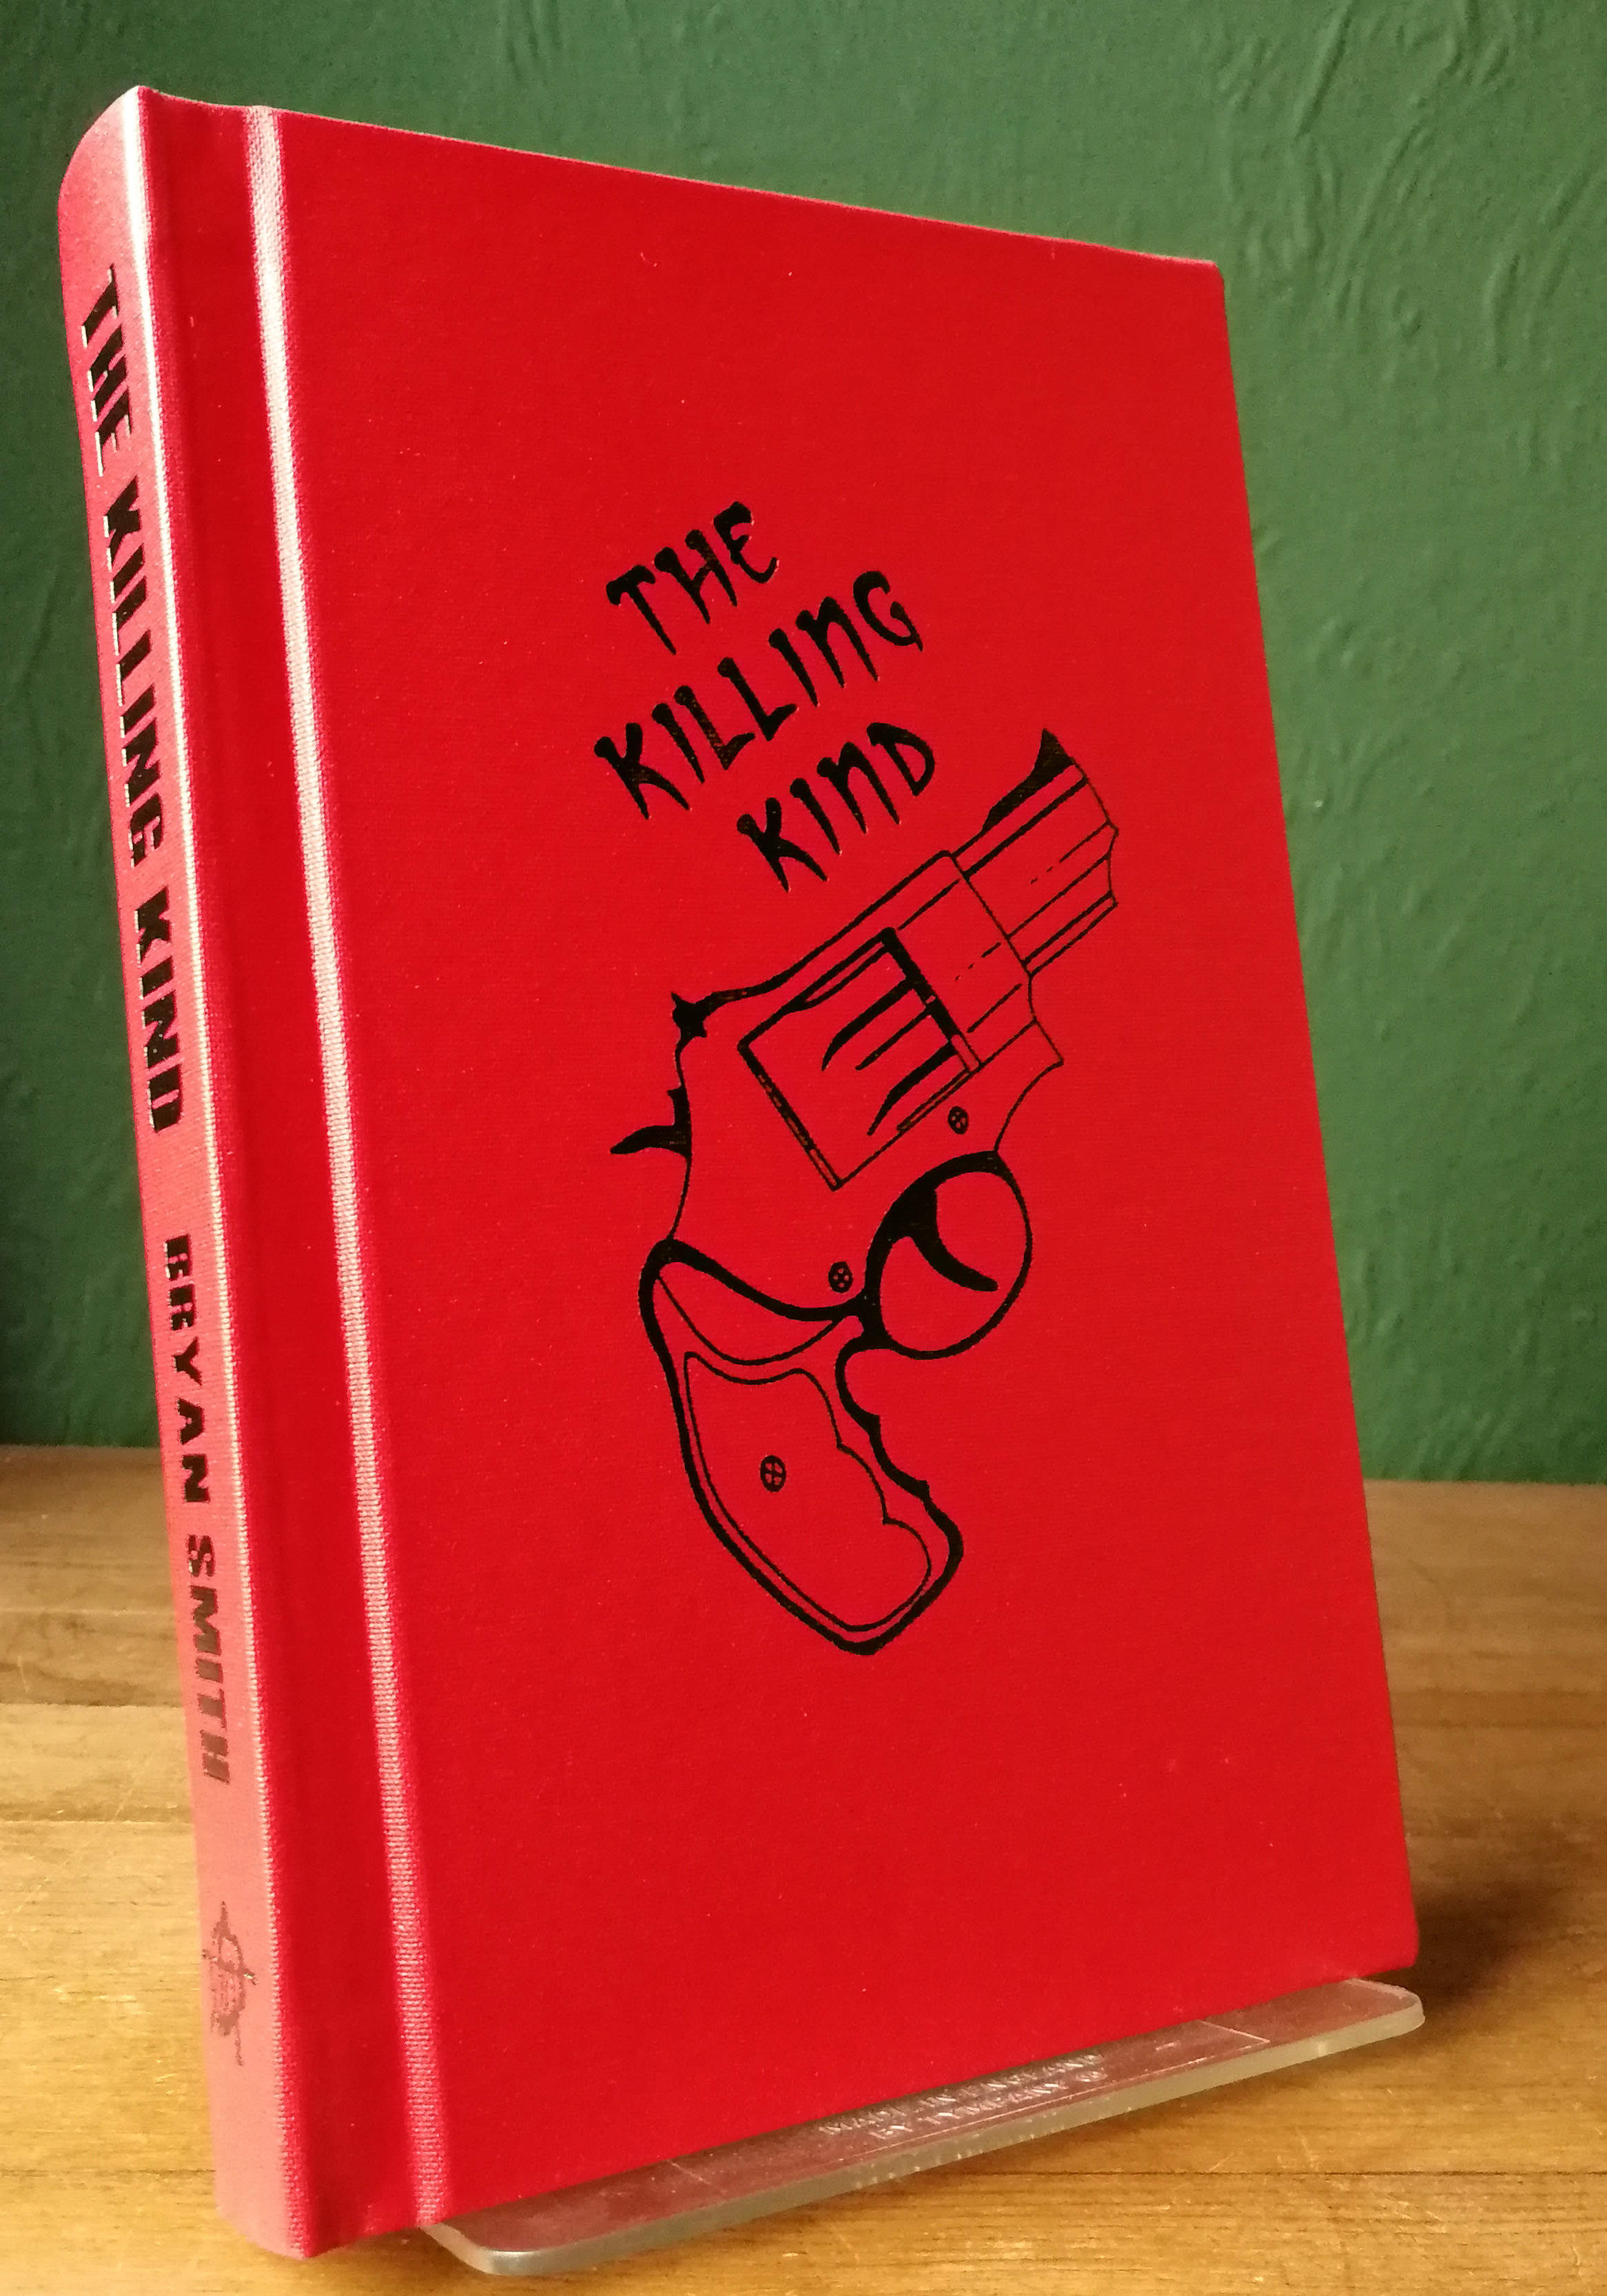 The Killing Kind Signed Limited Edition